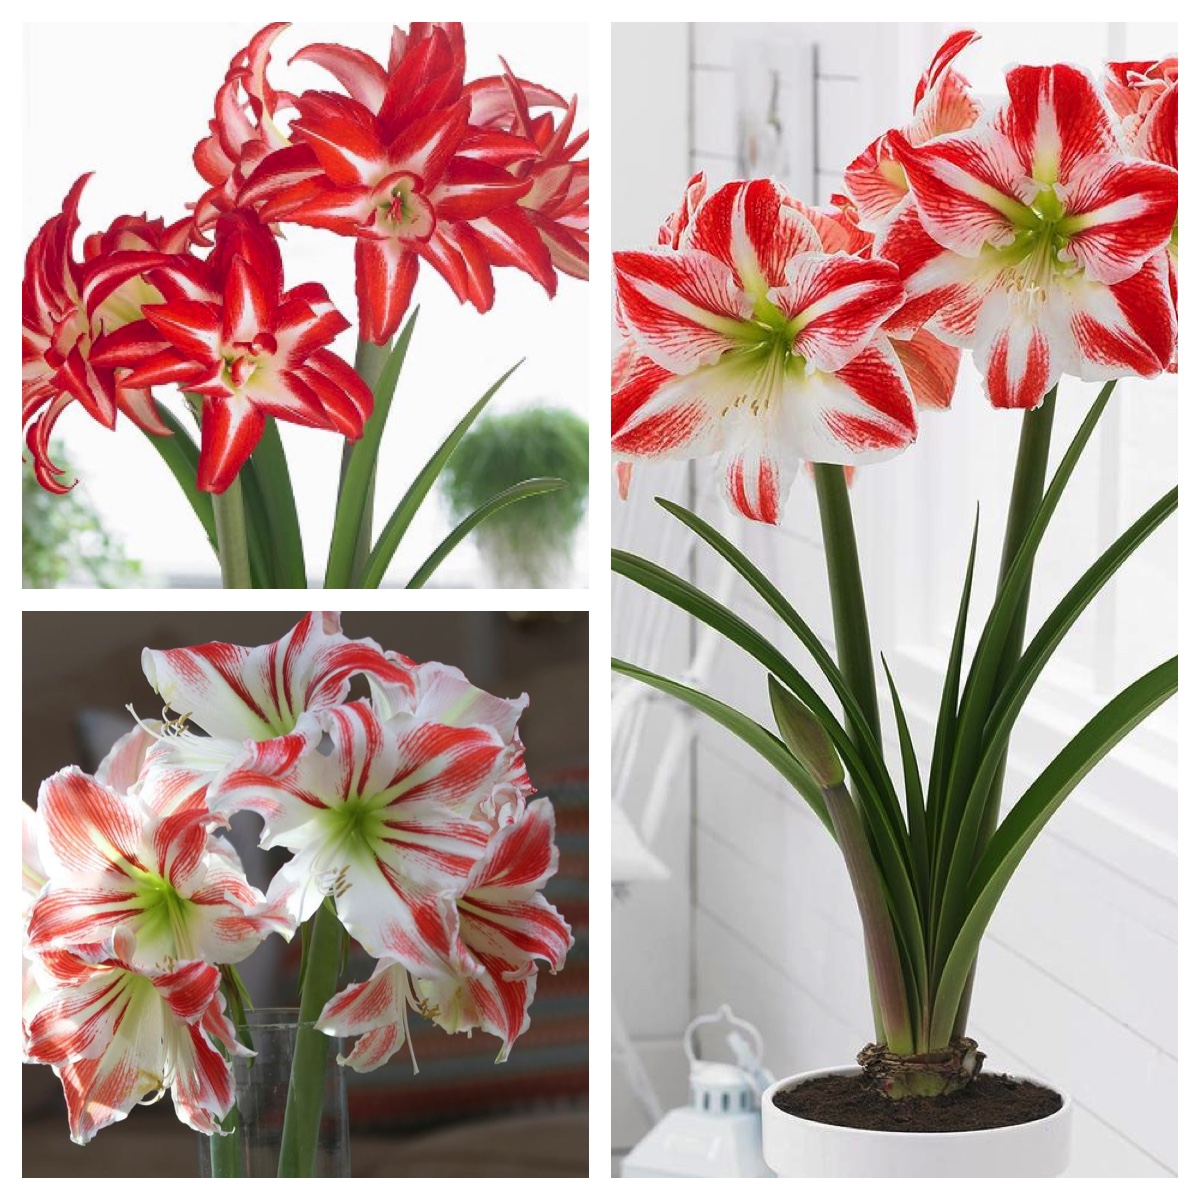 Amaryllis With a Difference - Longfield Gardens